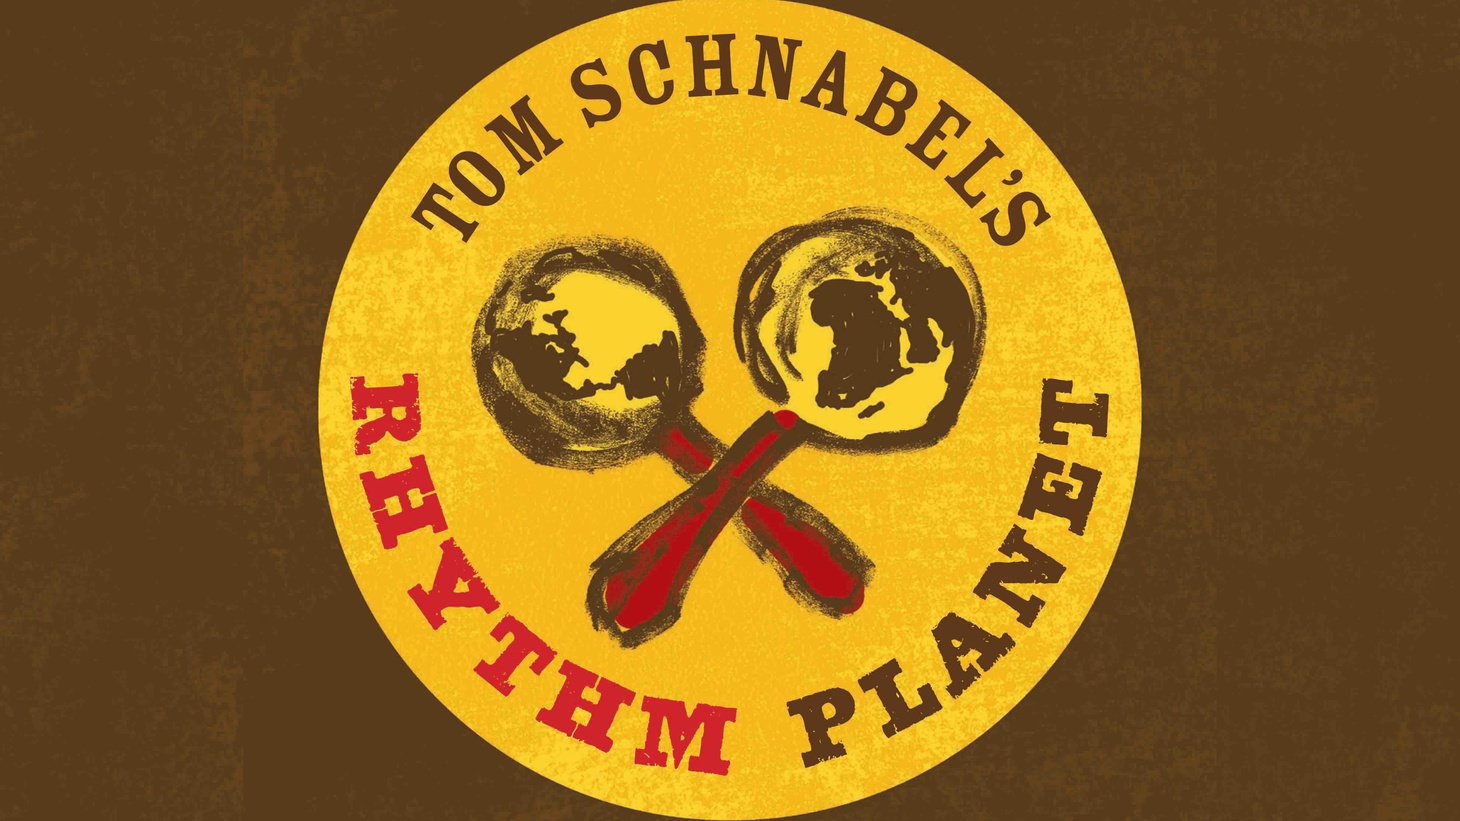 Rhythm Planet host Tom Schnabel joins MBE guest host Aaron Byrd at 10am to talk about a musical genre called raï, which incorporates Arabic, flamenco, French chanson, jazz, and other styles into its mix.